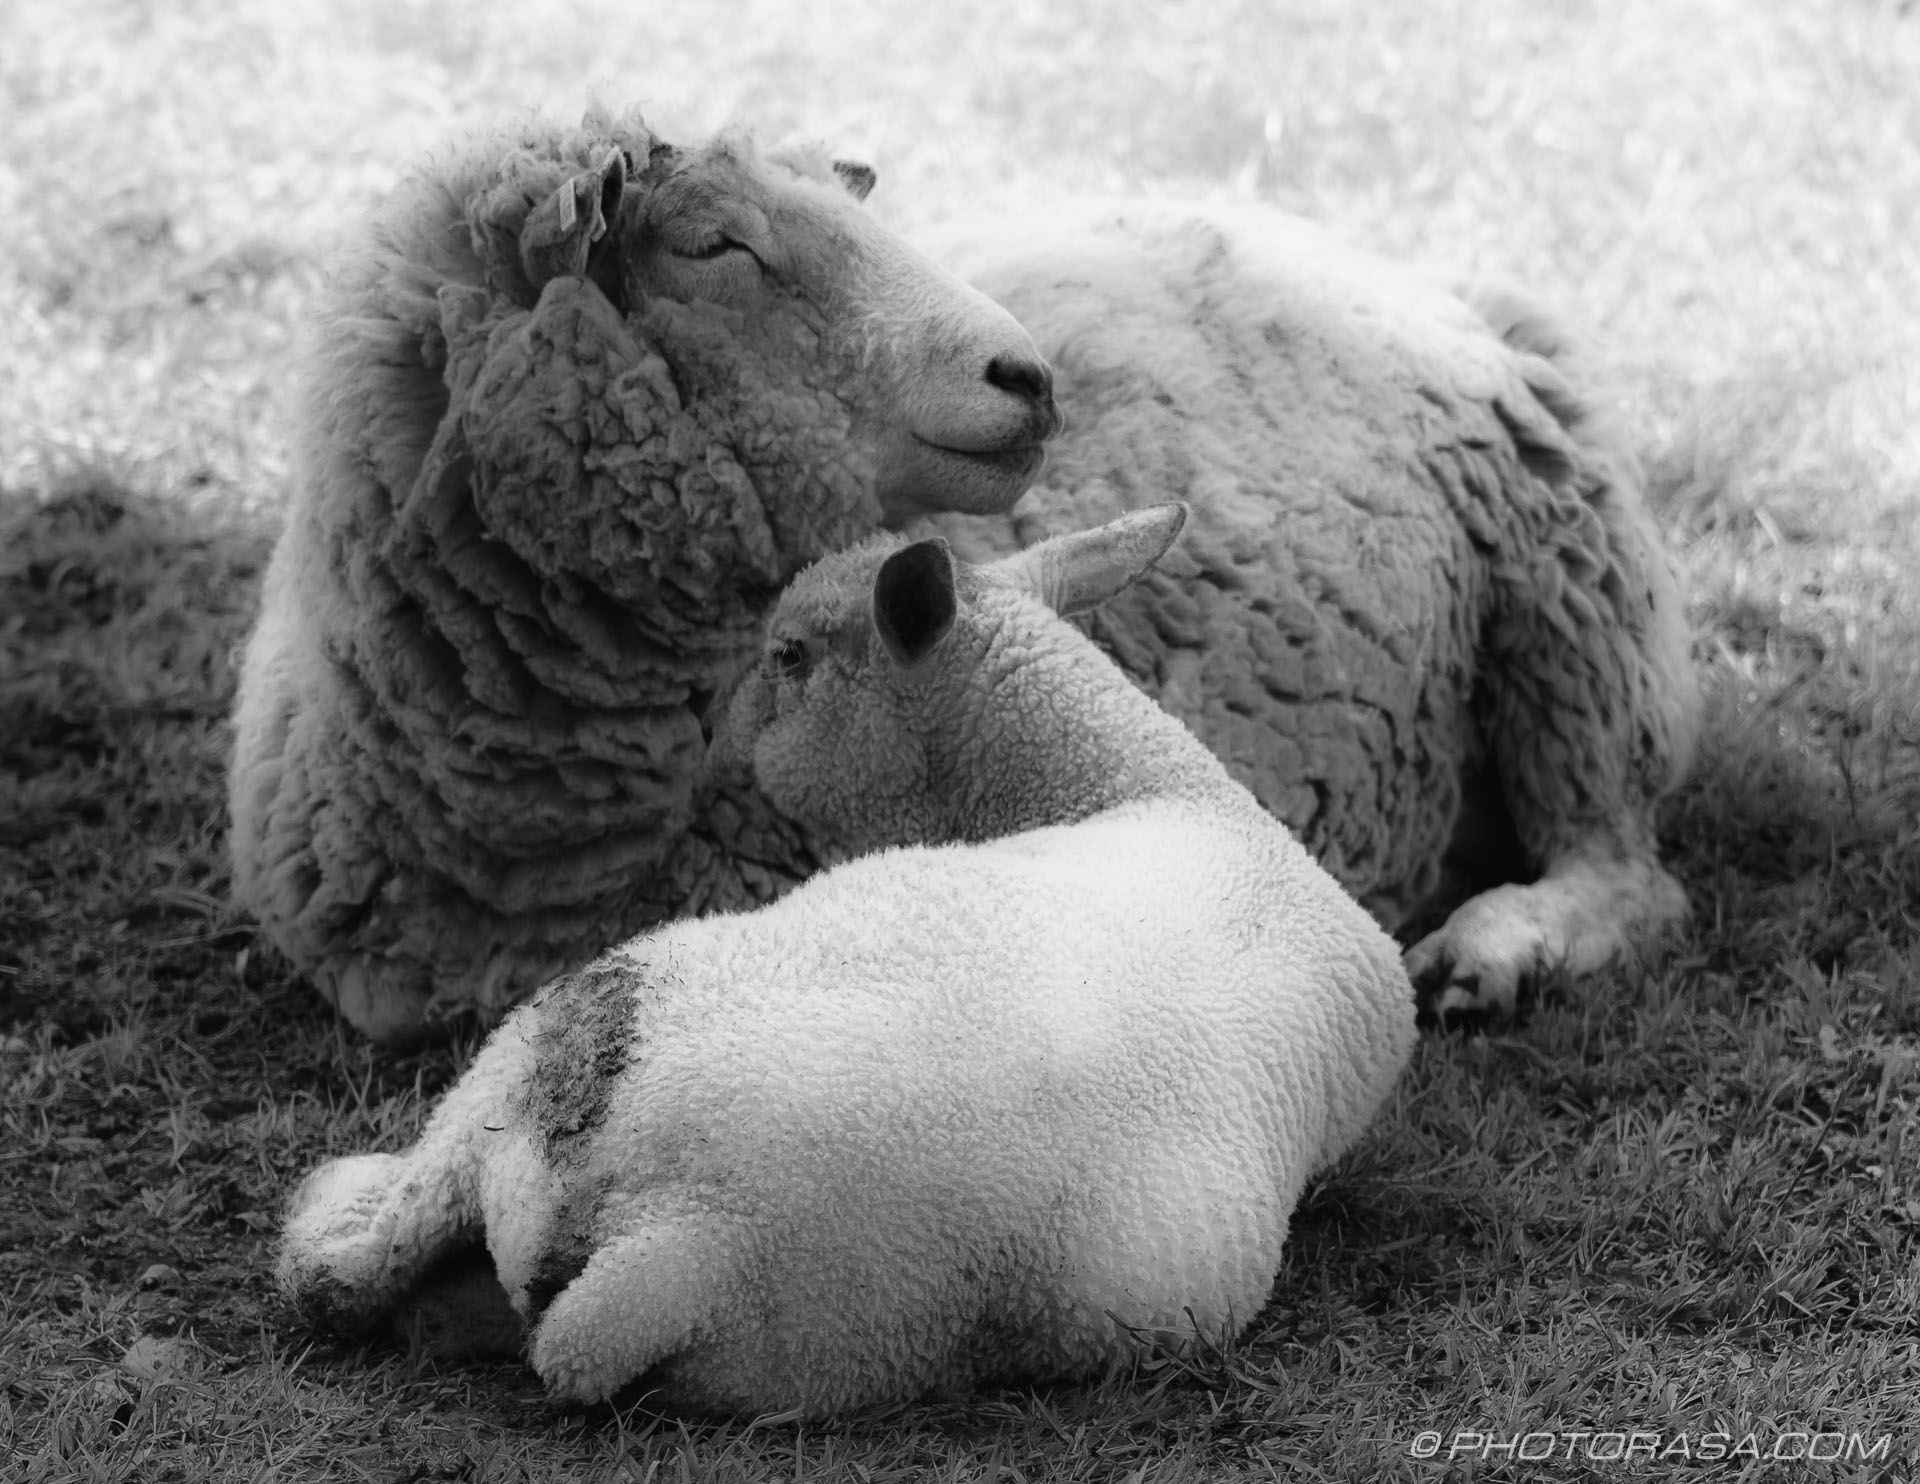 https://photorasa.com/sheep/lamb-and-mother-2/